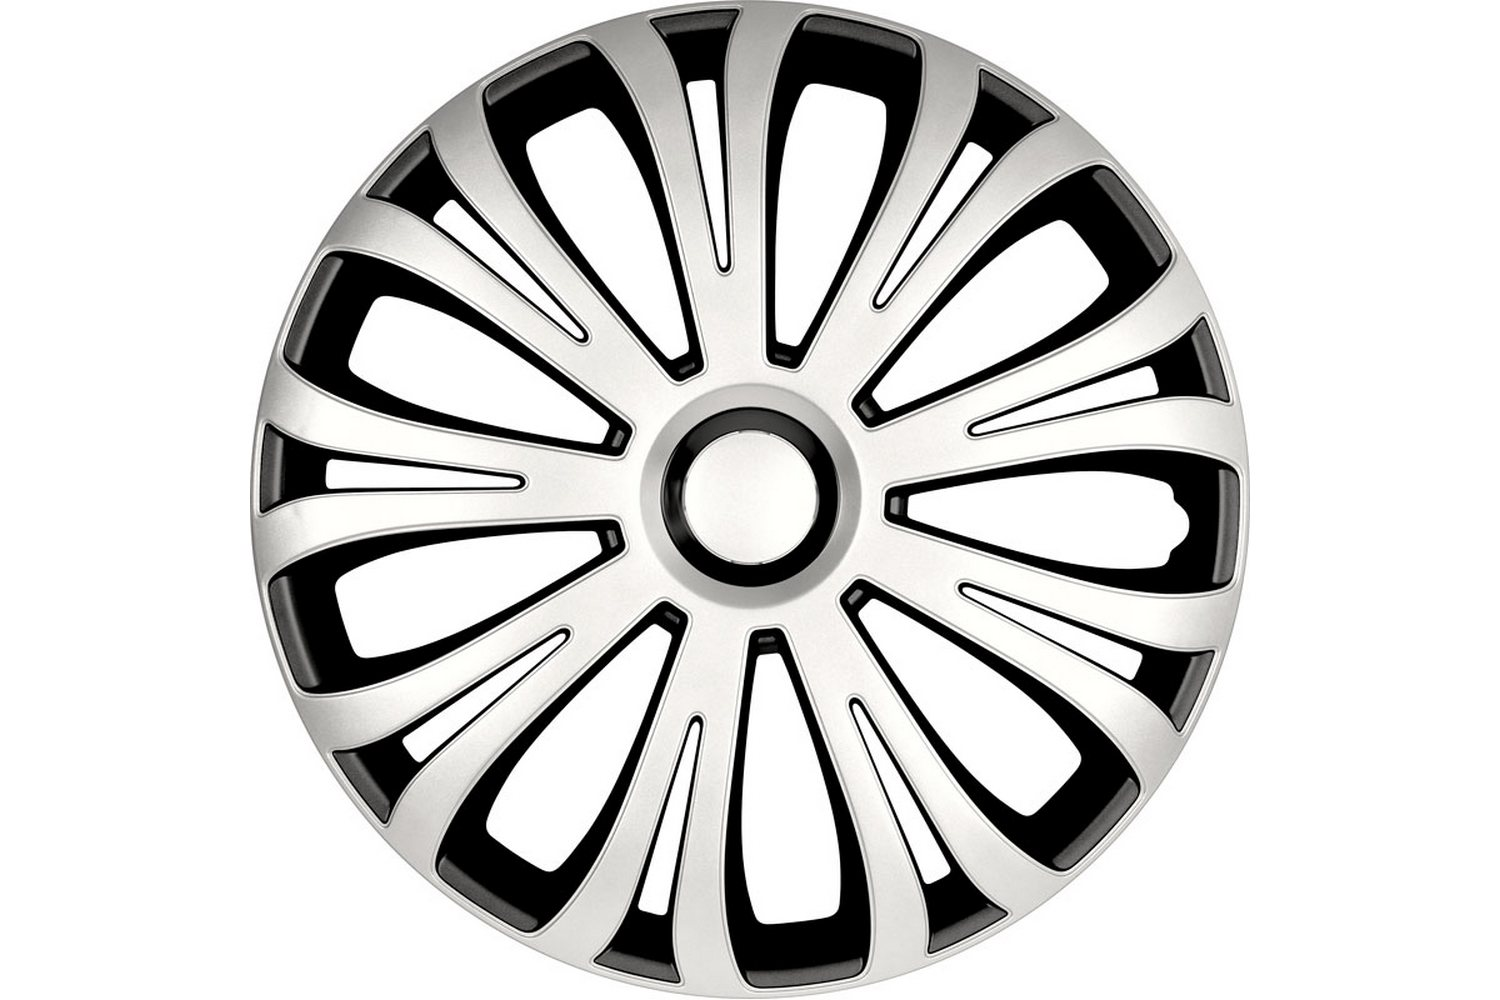 Wheel covers Avera 15 inch set 4 pieces